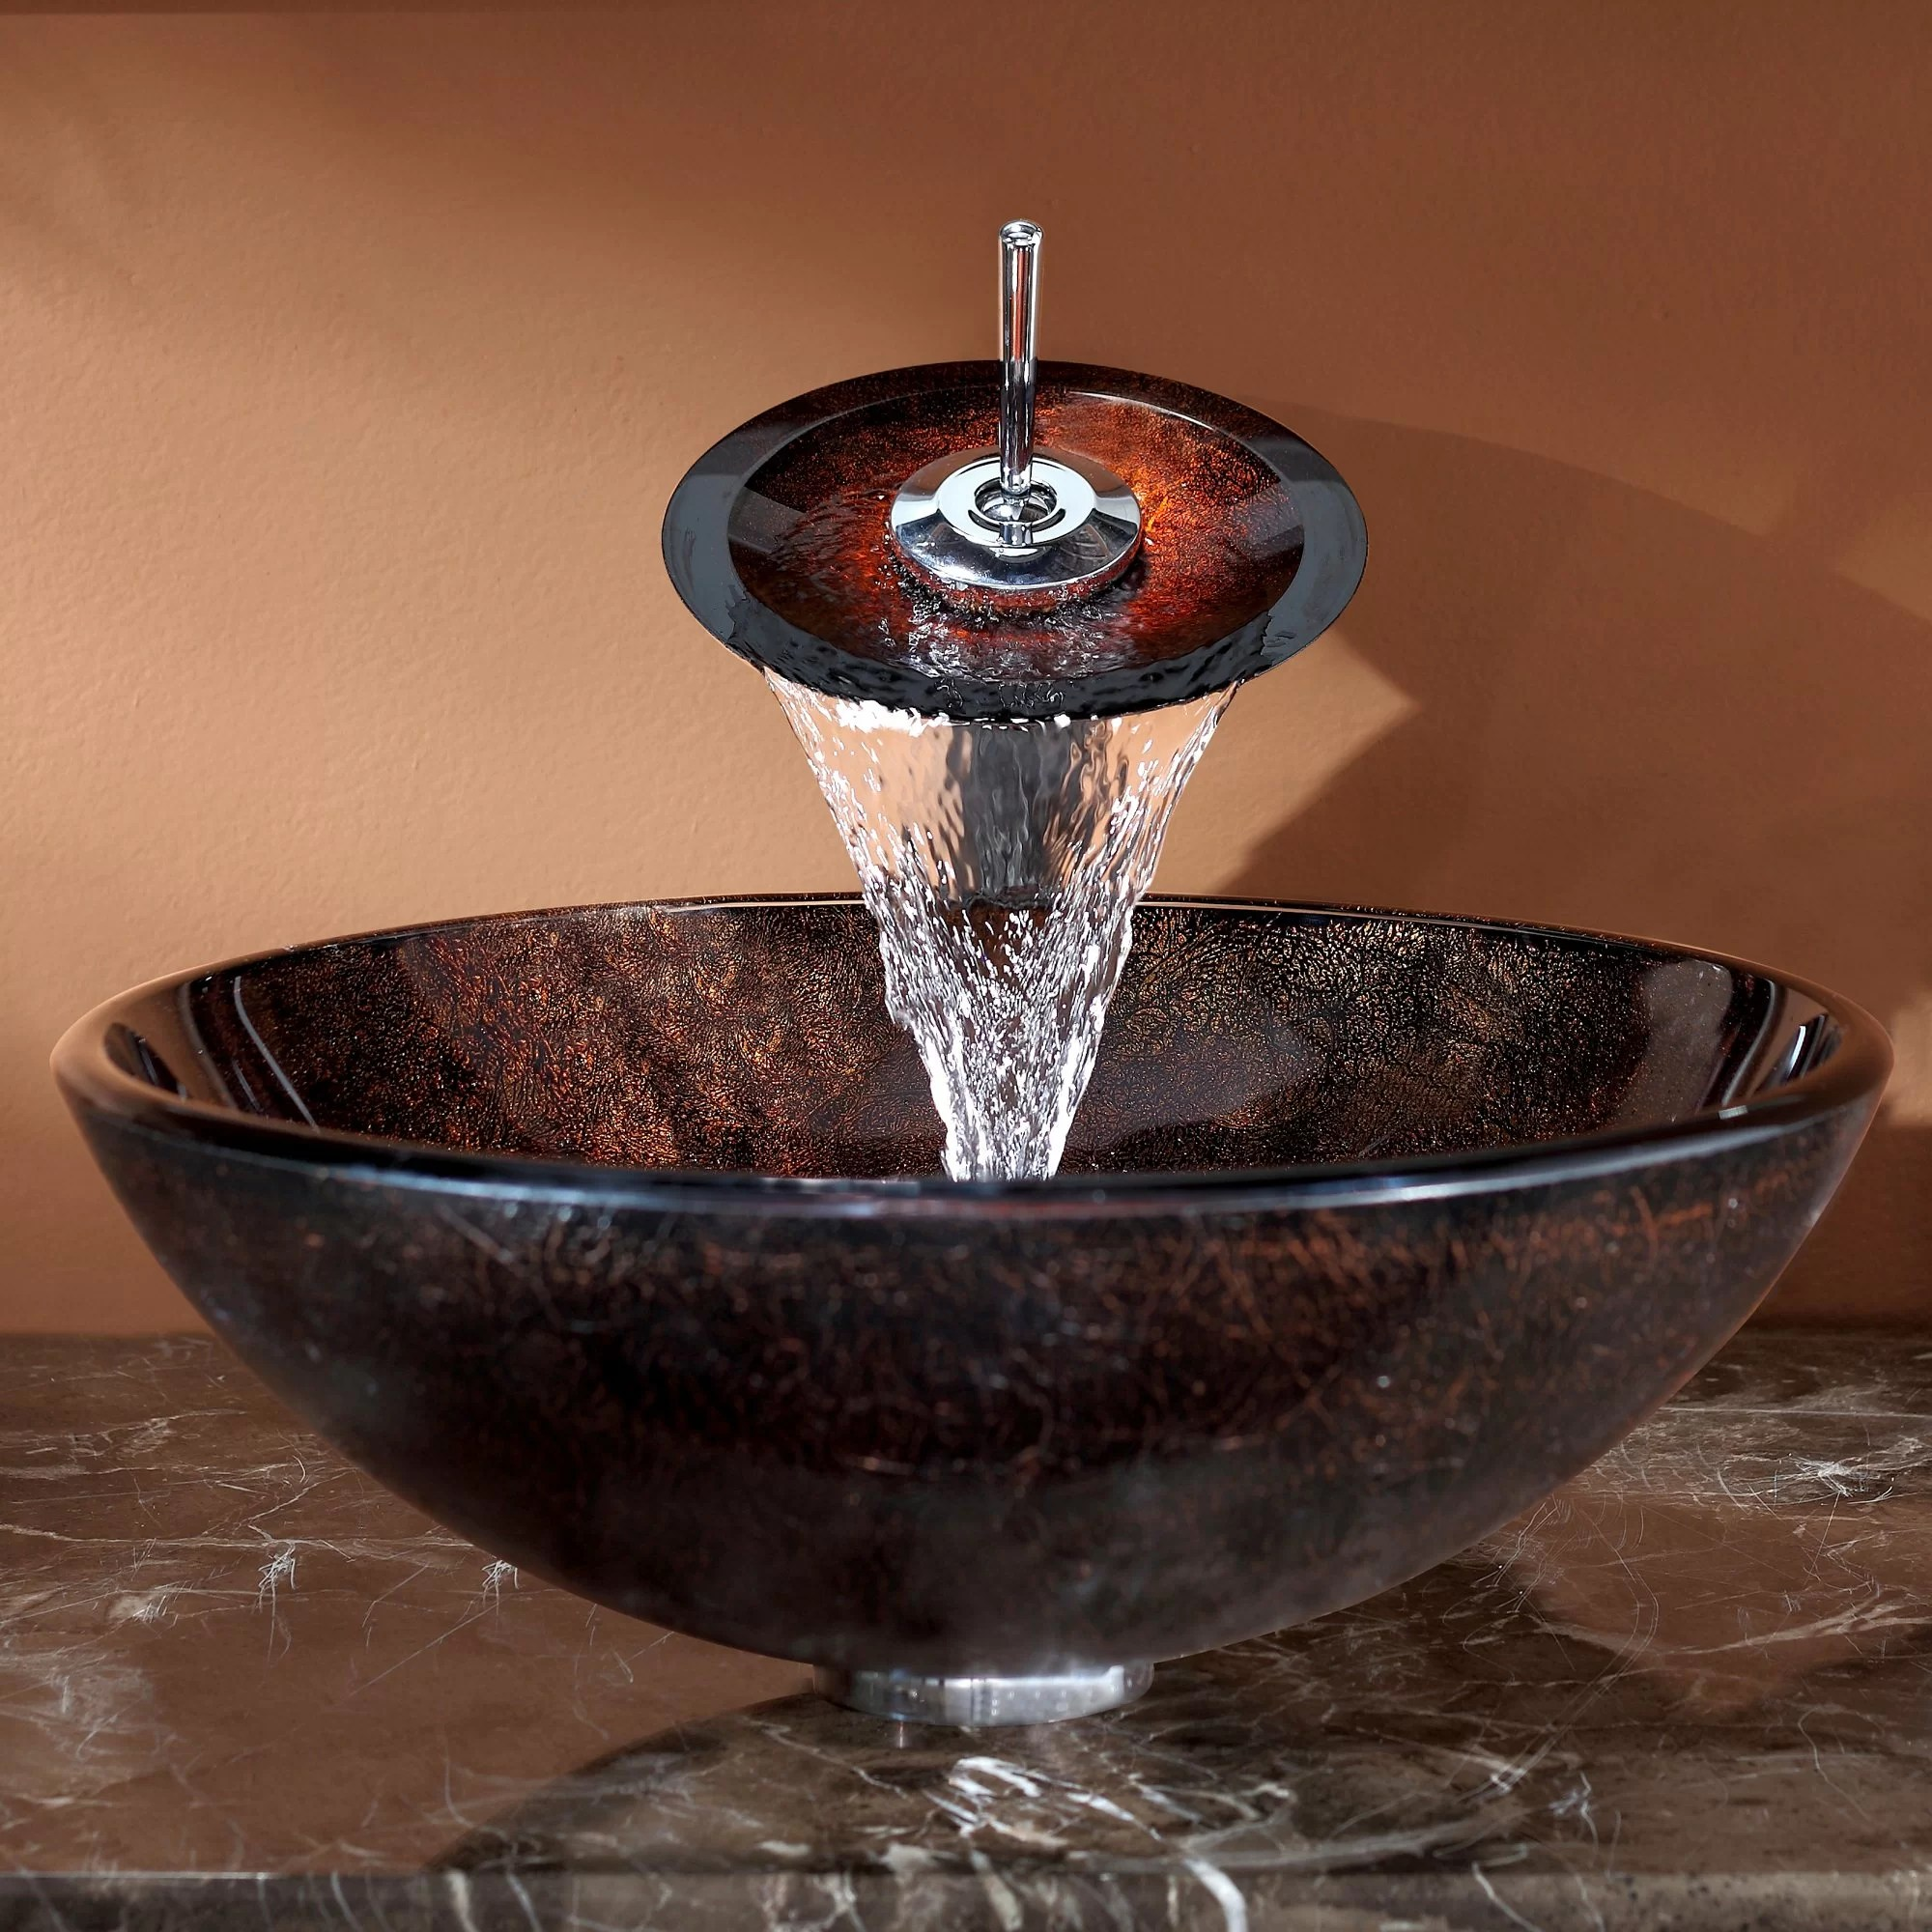 Waterfall Faucet For Vessel Sink Kraus Jupiter Vessel Bathroom Sink With Waterfall Faucet